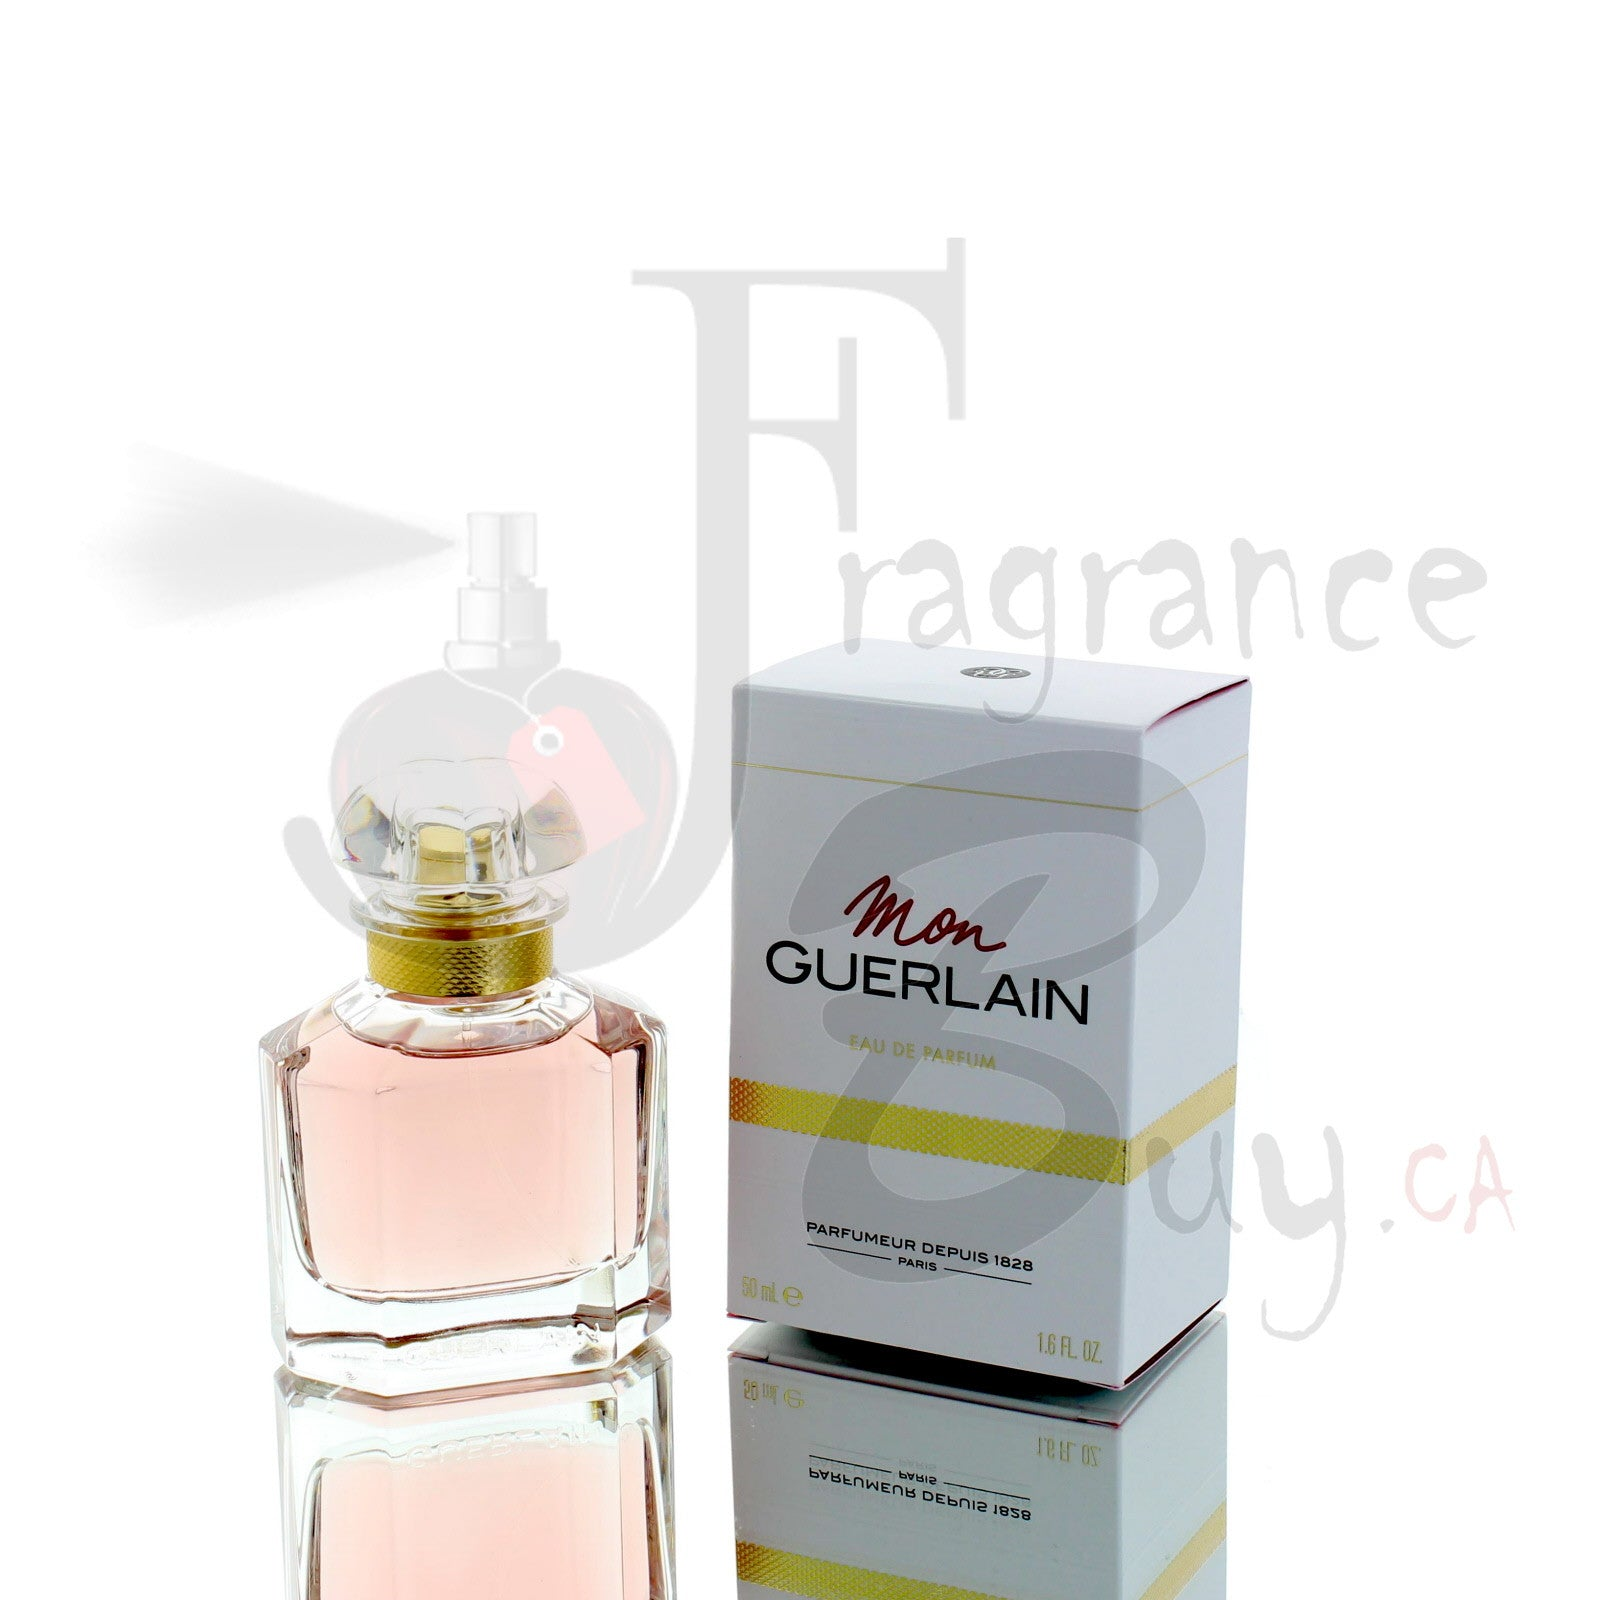 Mon Guerlain For Woman